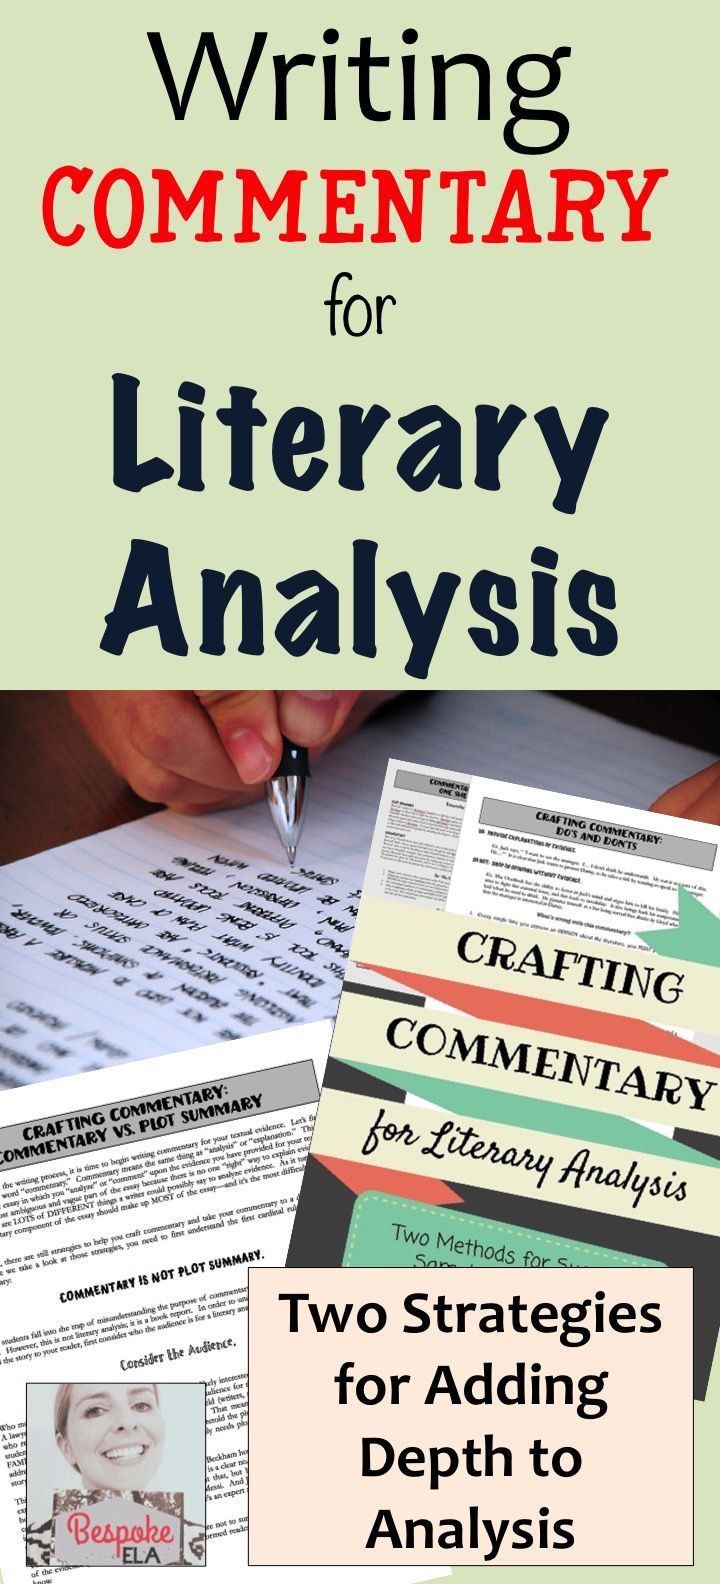 difference between college level writing and casual writing University of surrey (2013) 'the difference between descriptive writing and critical writing', [online] (cited 13 th february 2013)  the writepass journal.